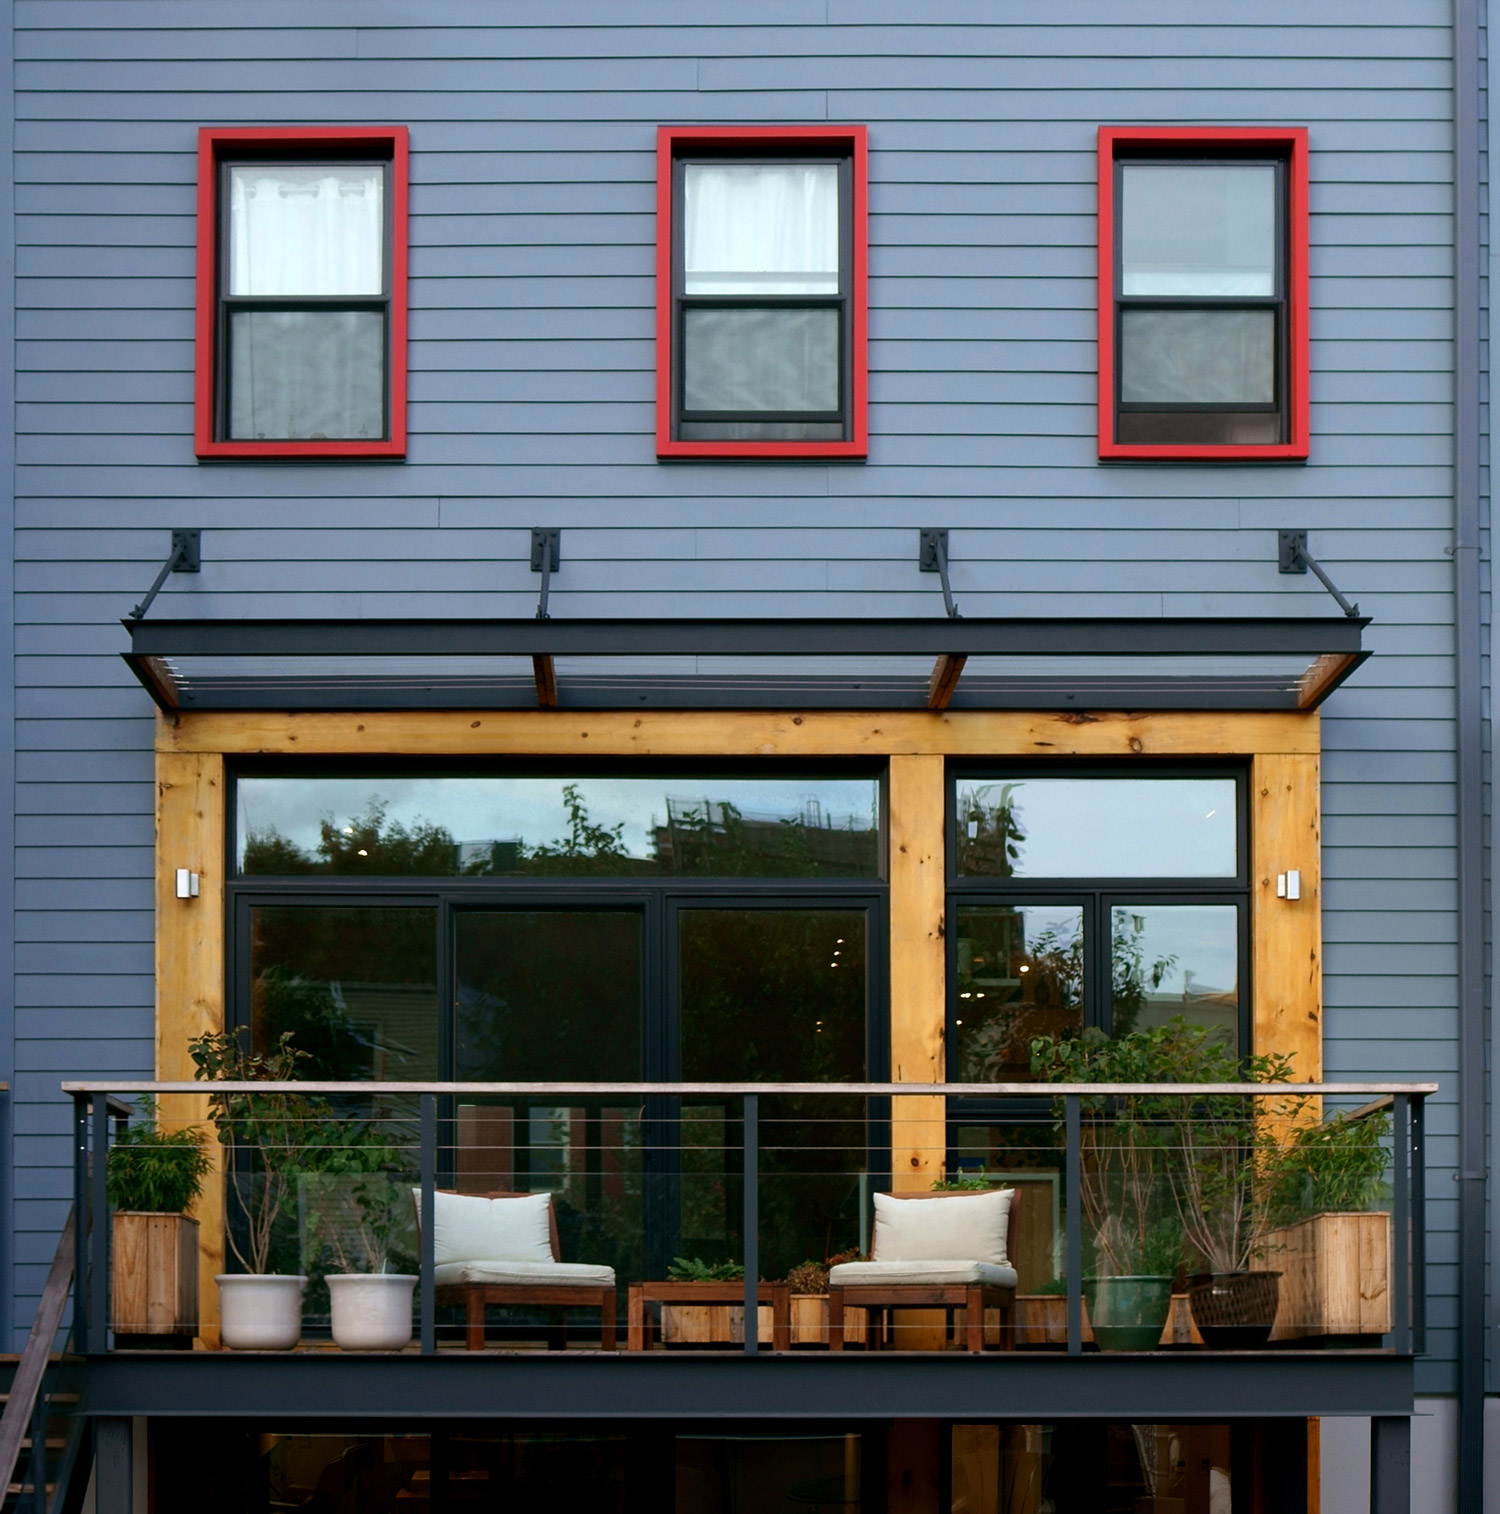 Brooklyn Townhouse Renovation - Red Window Frames at Rear Wall and Steel & Wood Deck